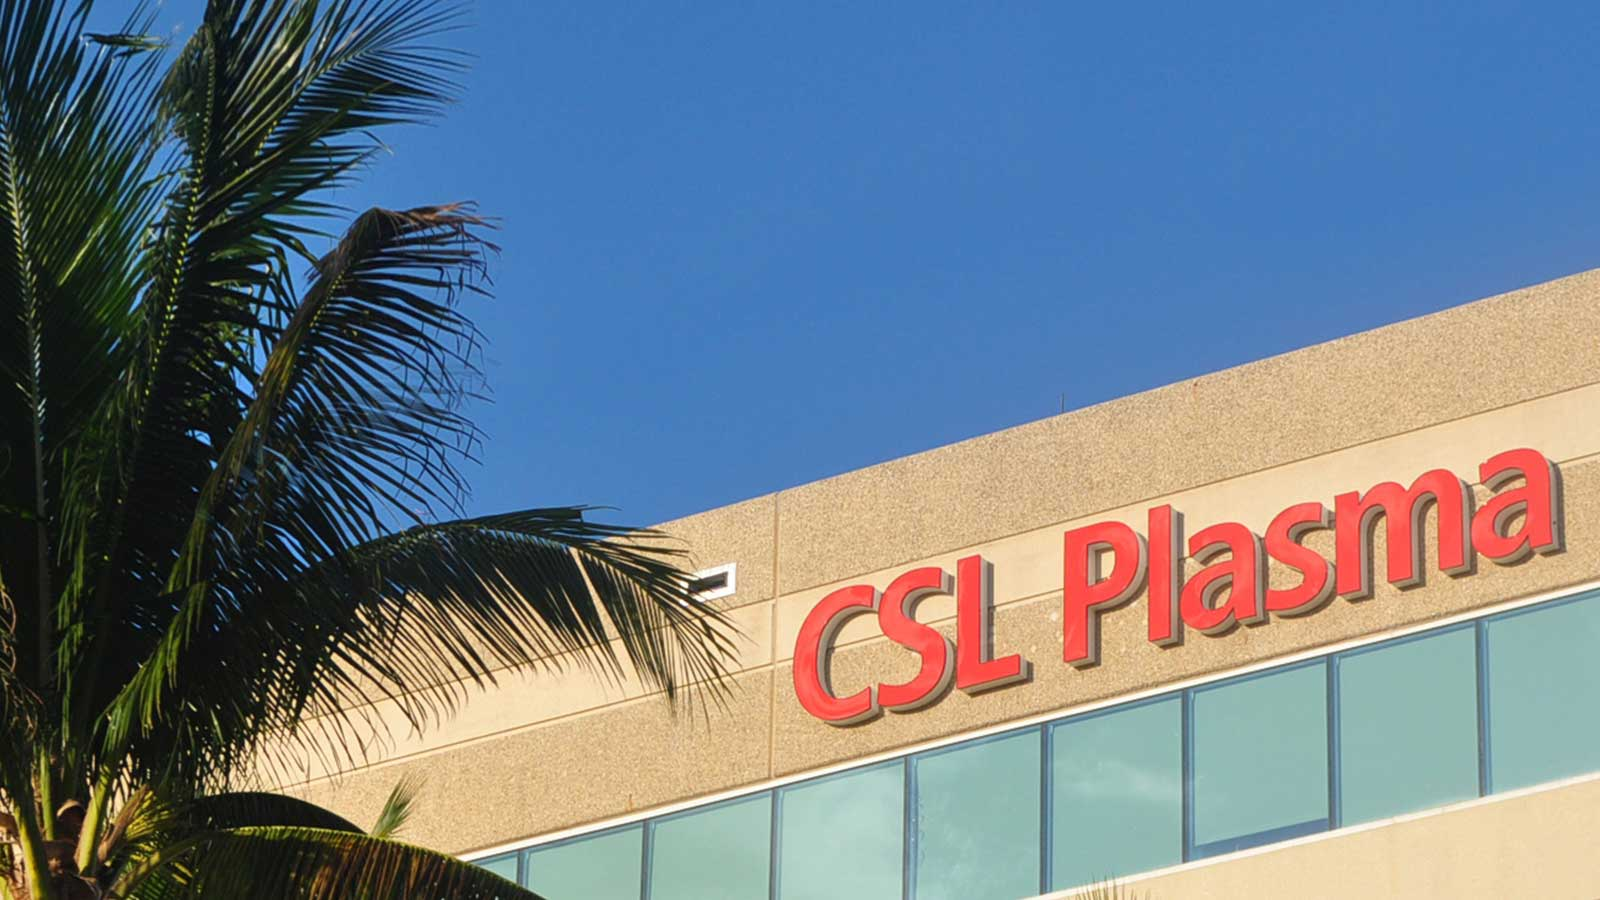 CSL Plasma Office Building